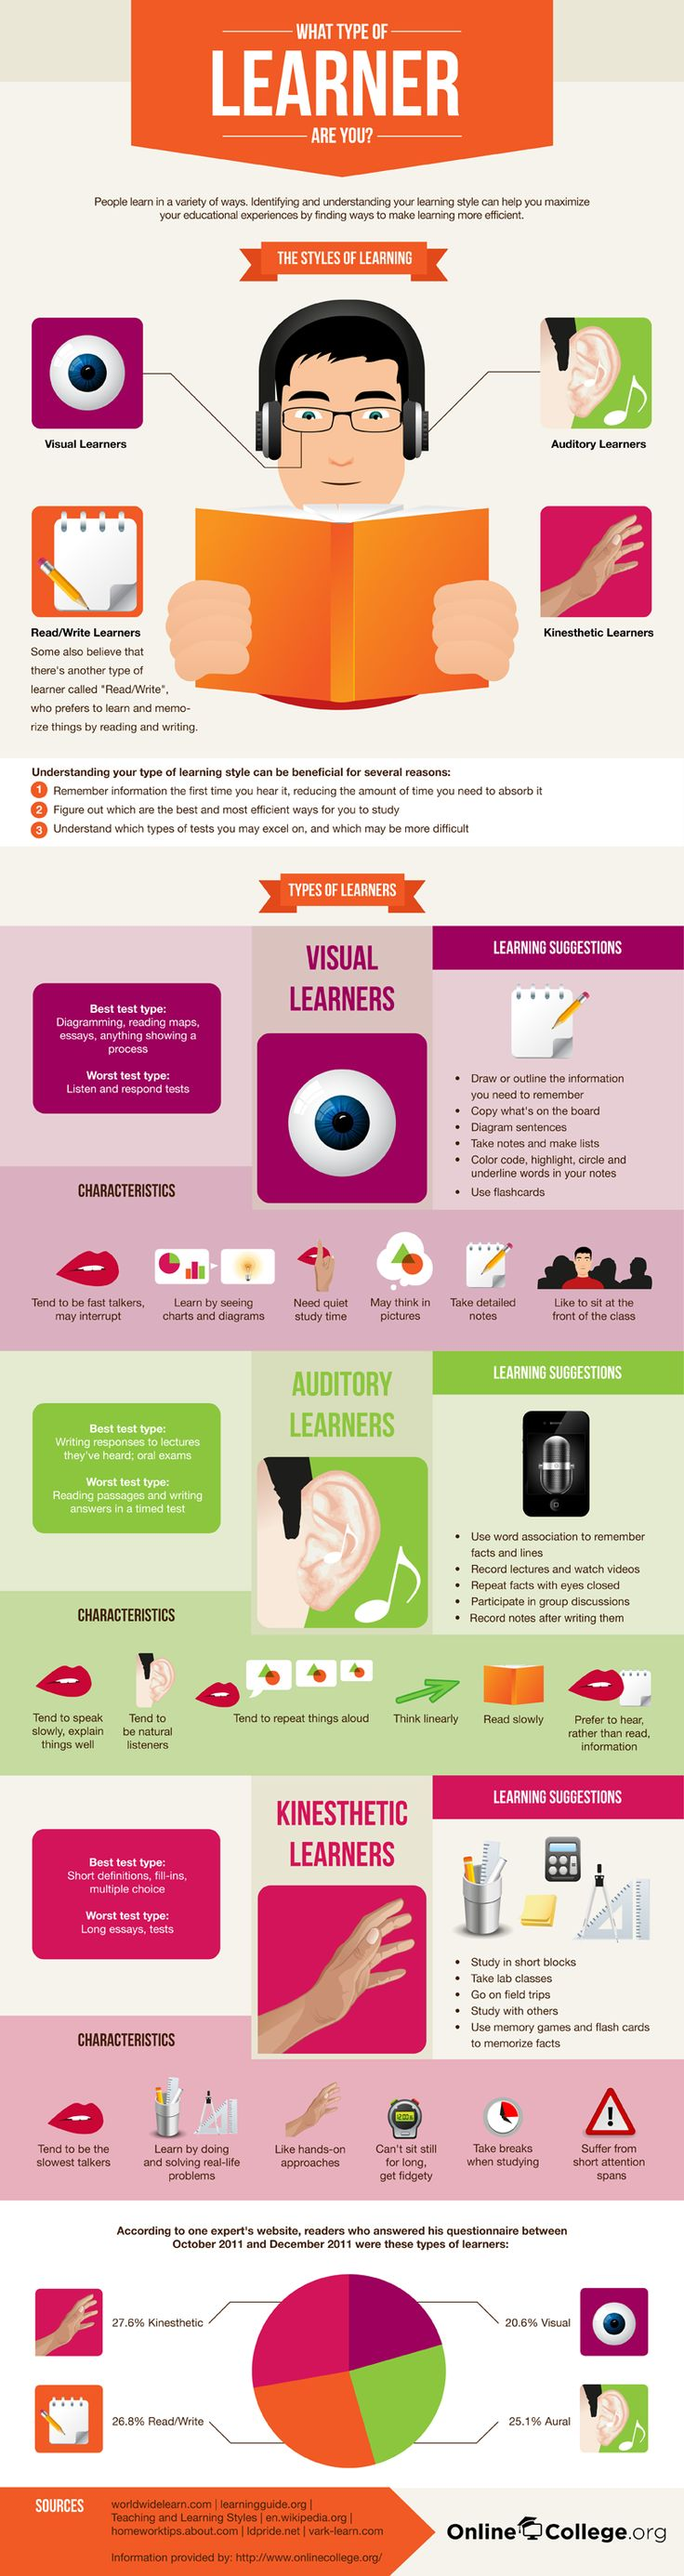 Tips to Understand Your Learning Style - Tipsographic